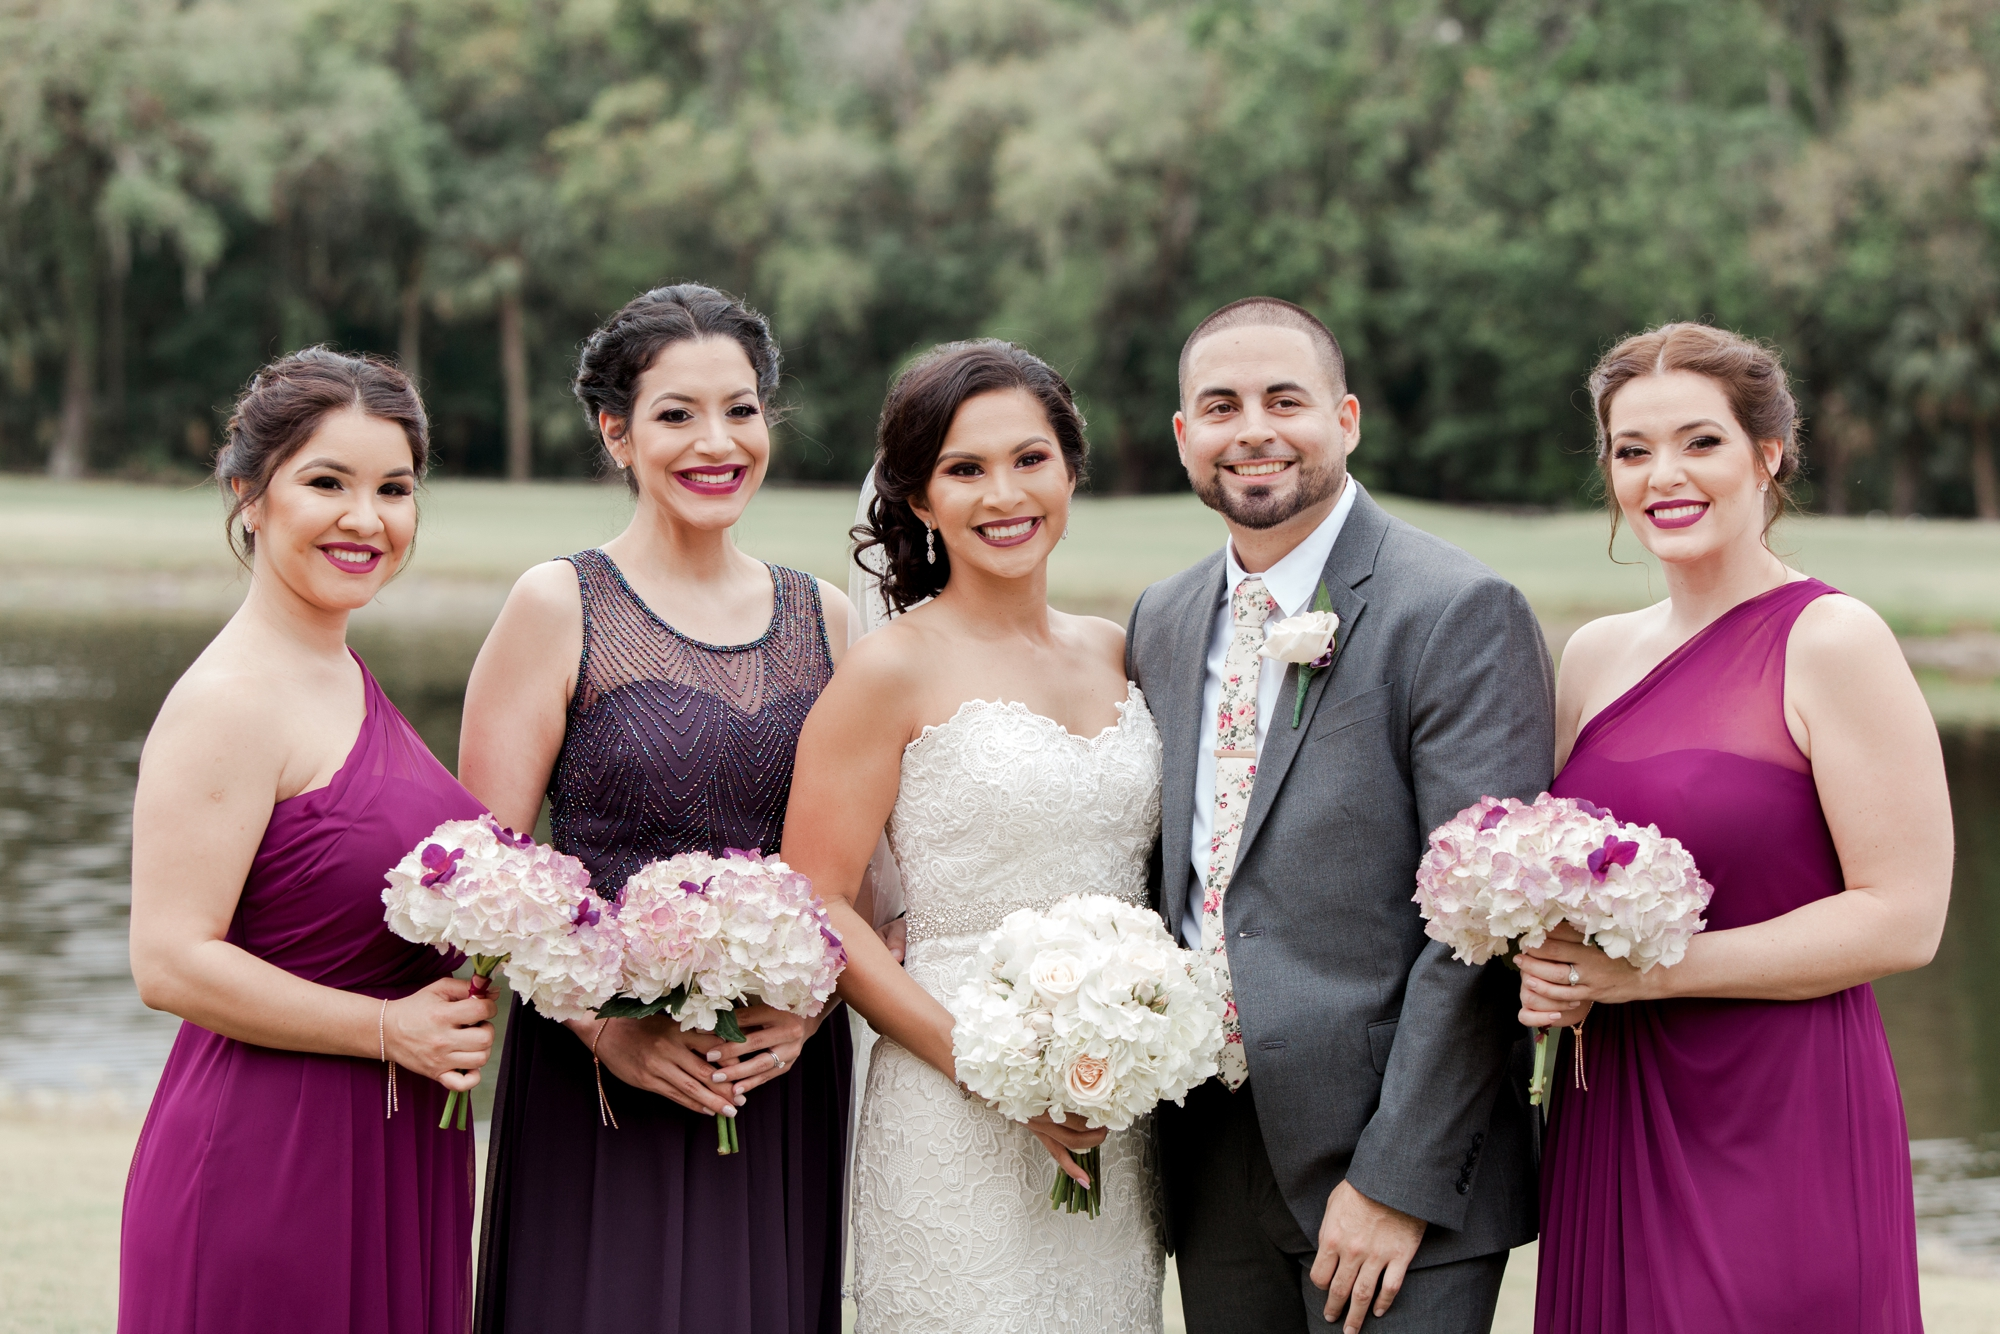 tampa-palms-wedding-christina-luis-IMG_0729.jpg